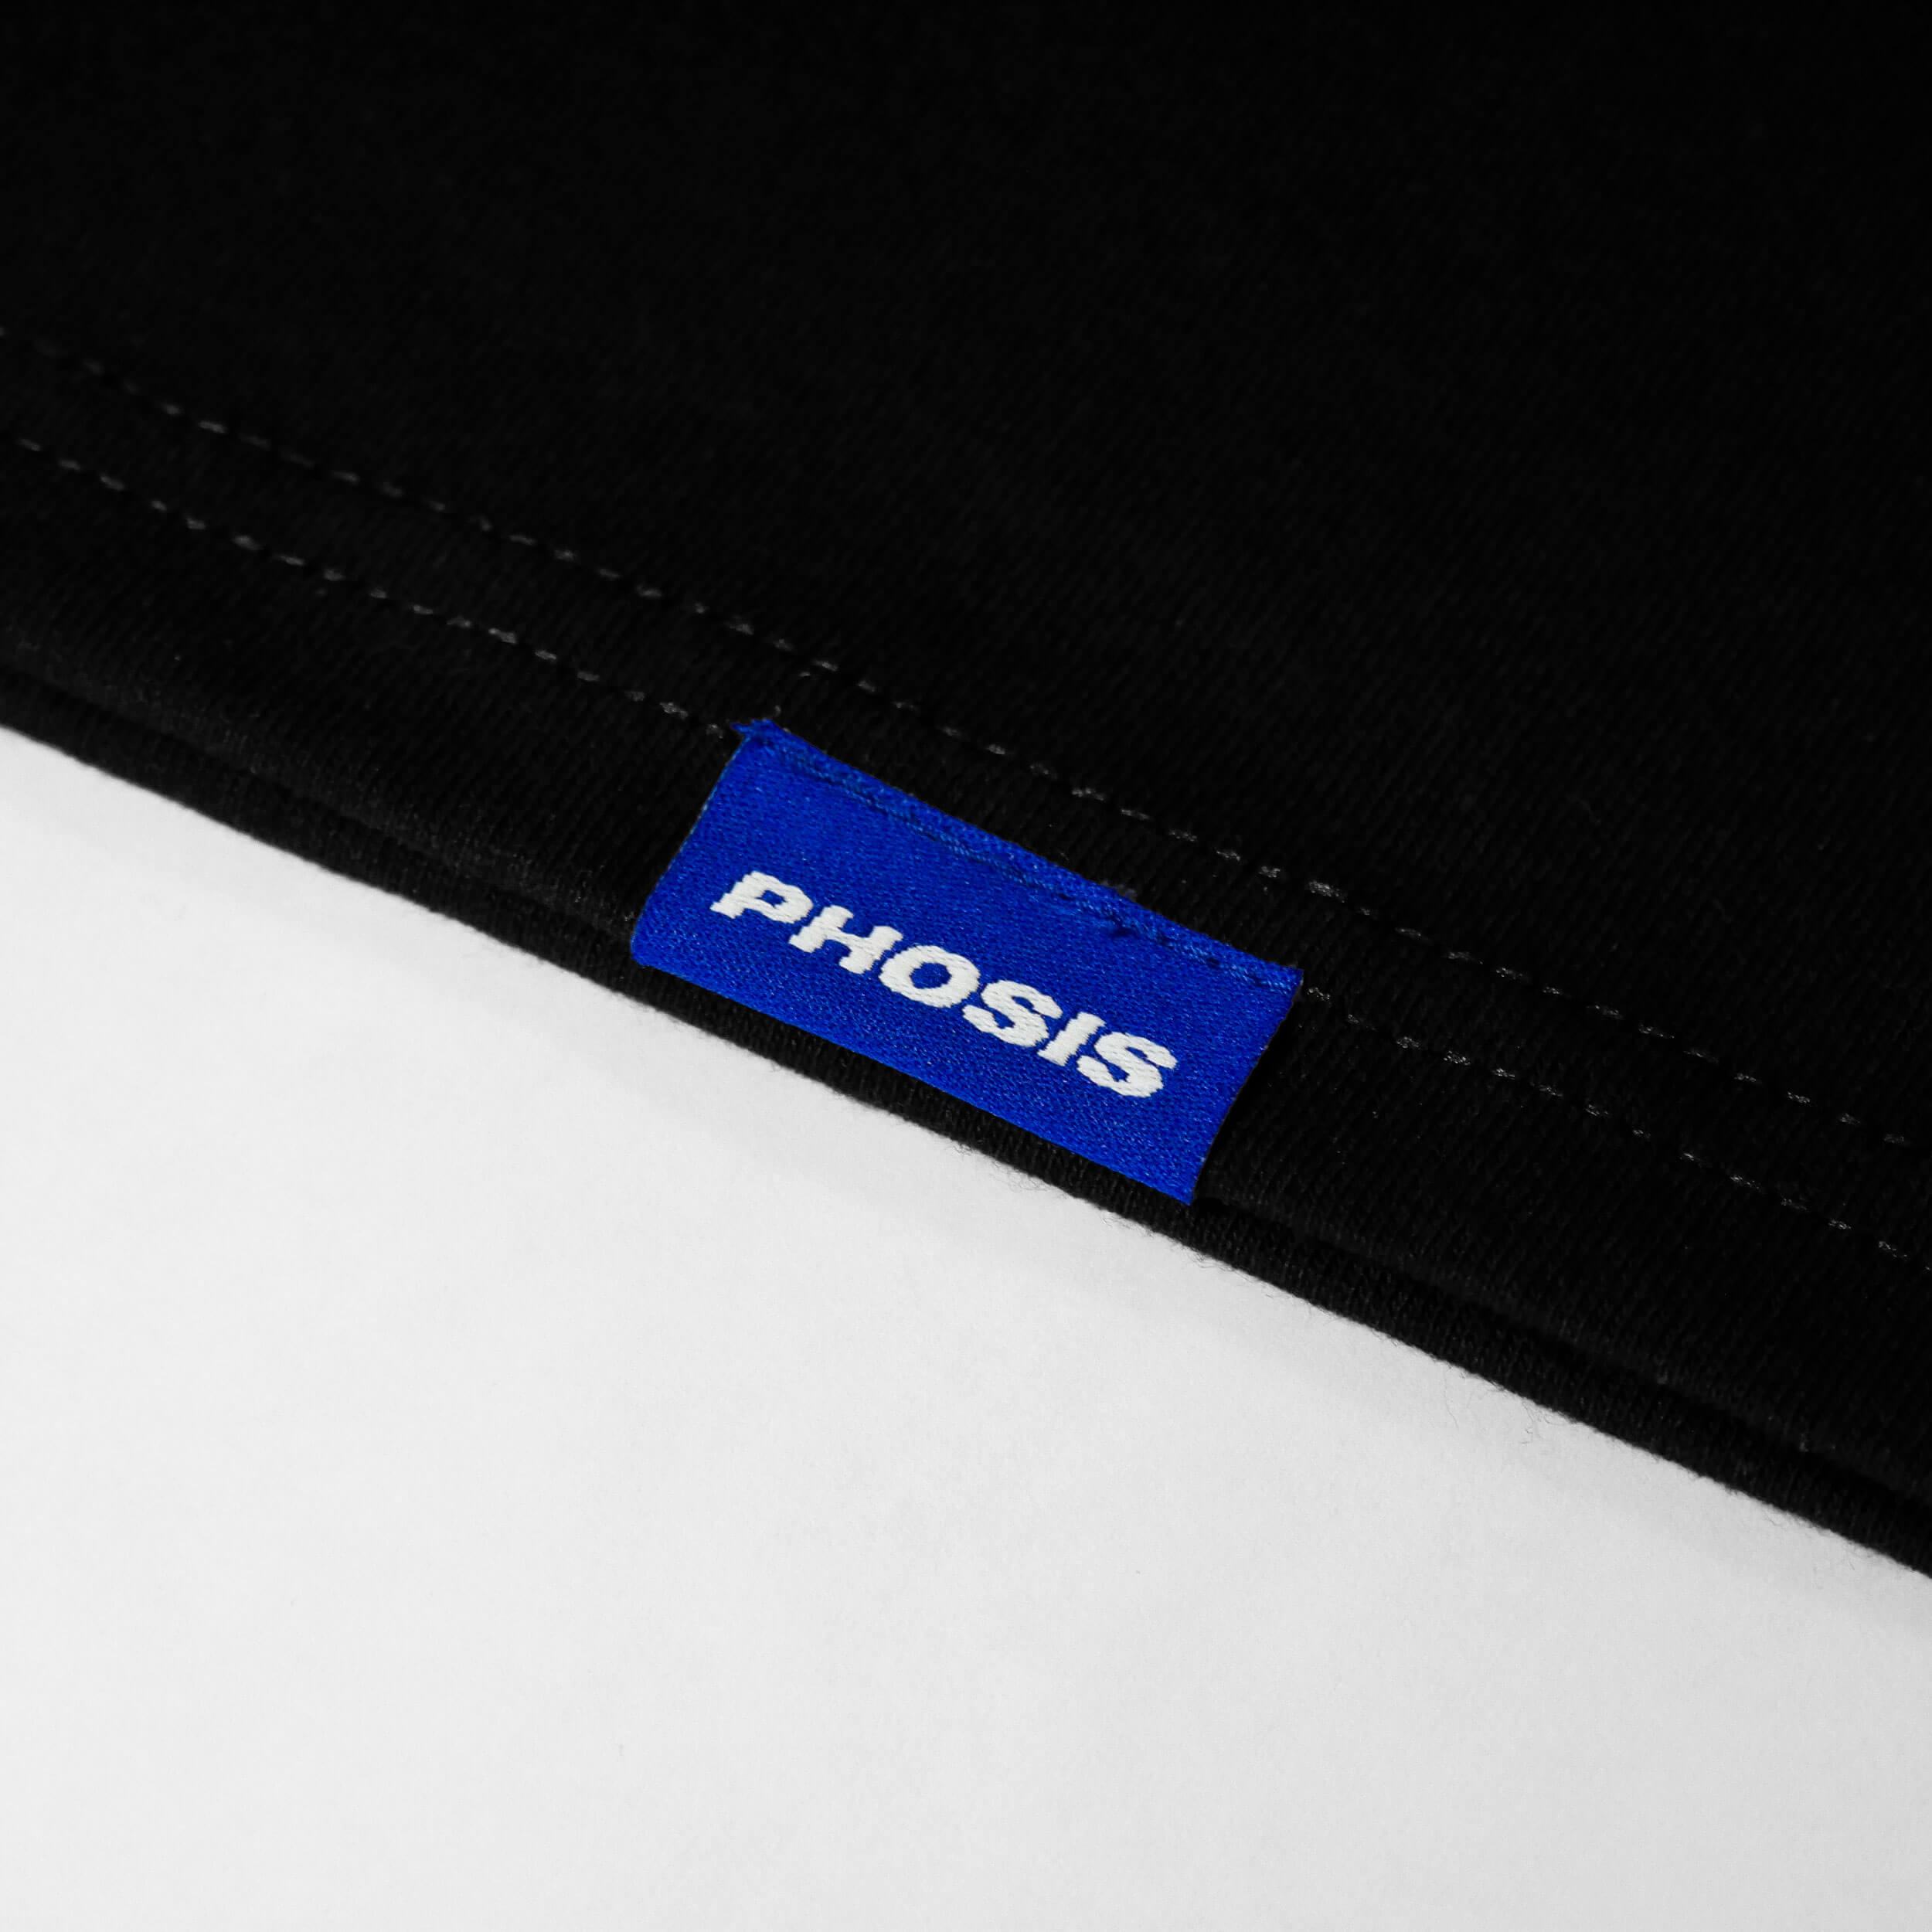 Close up view of the blue woven label in the ATLANTIC black long sleeve from PHOSIS Clothing